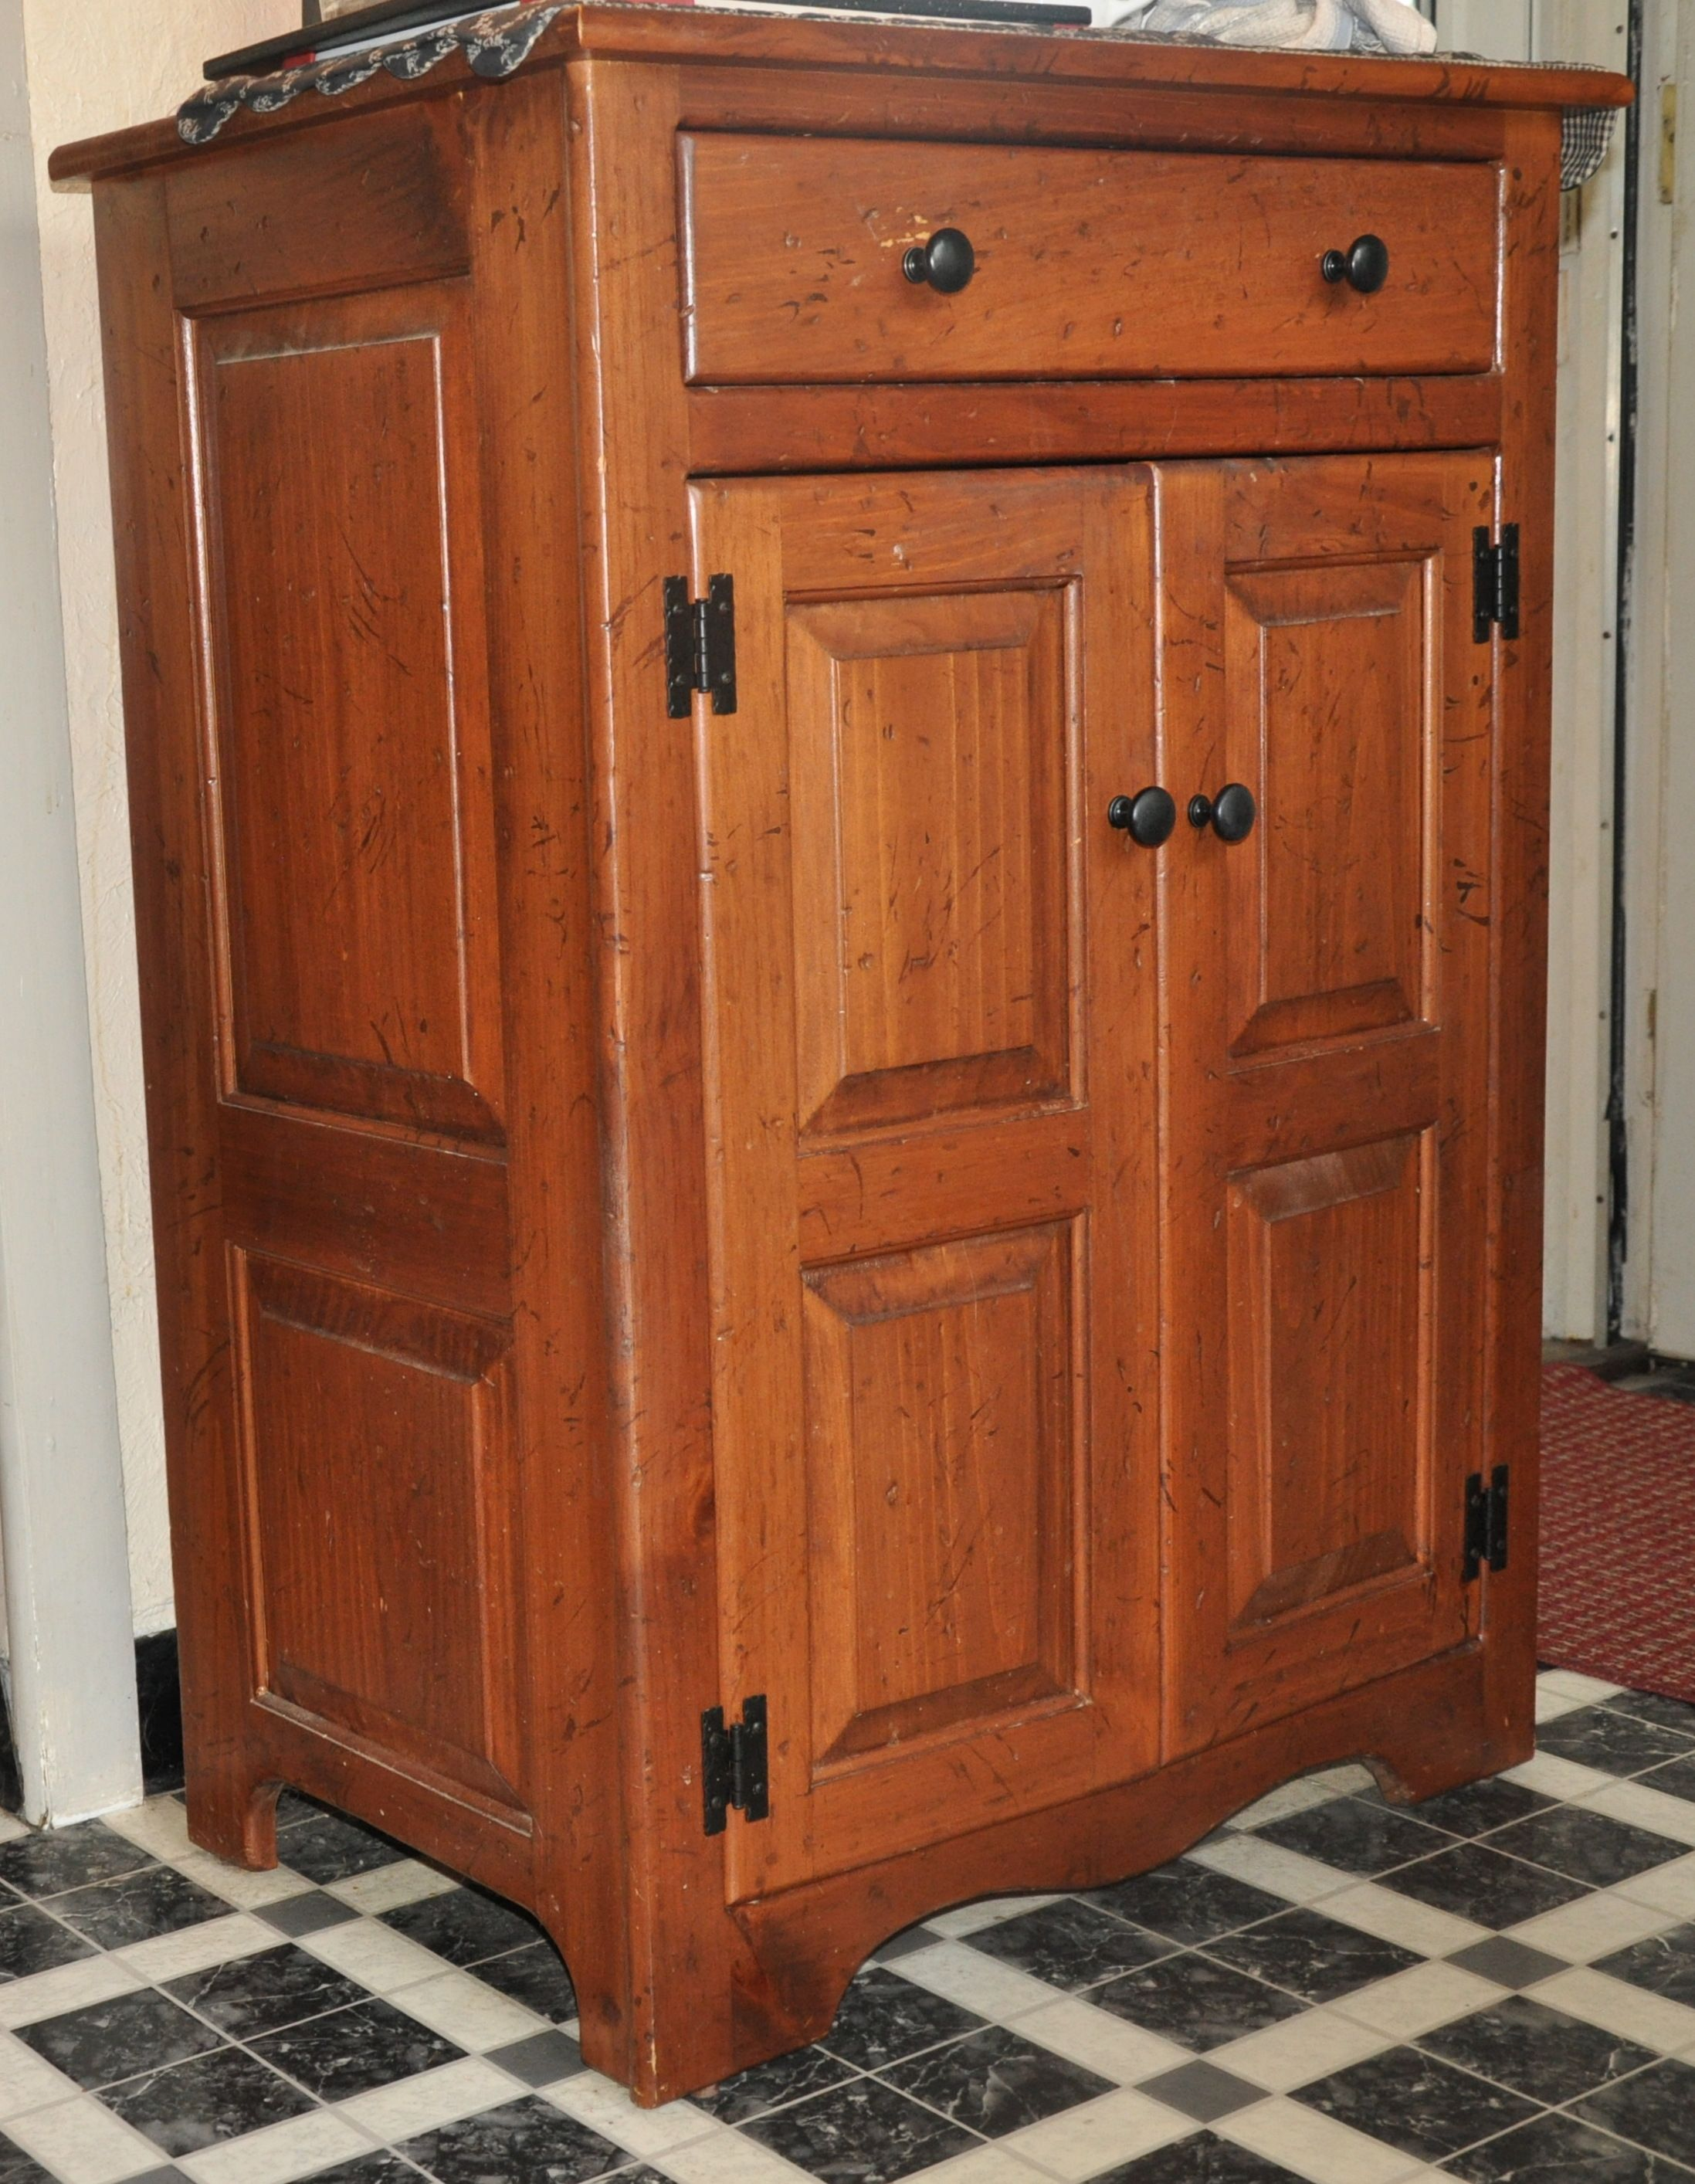 Wooden Cabinet Purchased At Amish Touch Homespun Kitchen Cabinet Makers Amish Kitchen Cabinets Wooden Cabinets